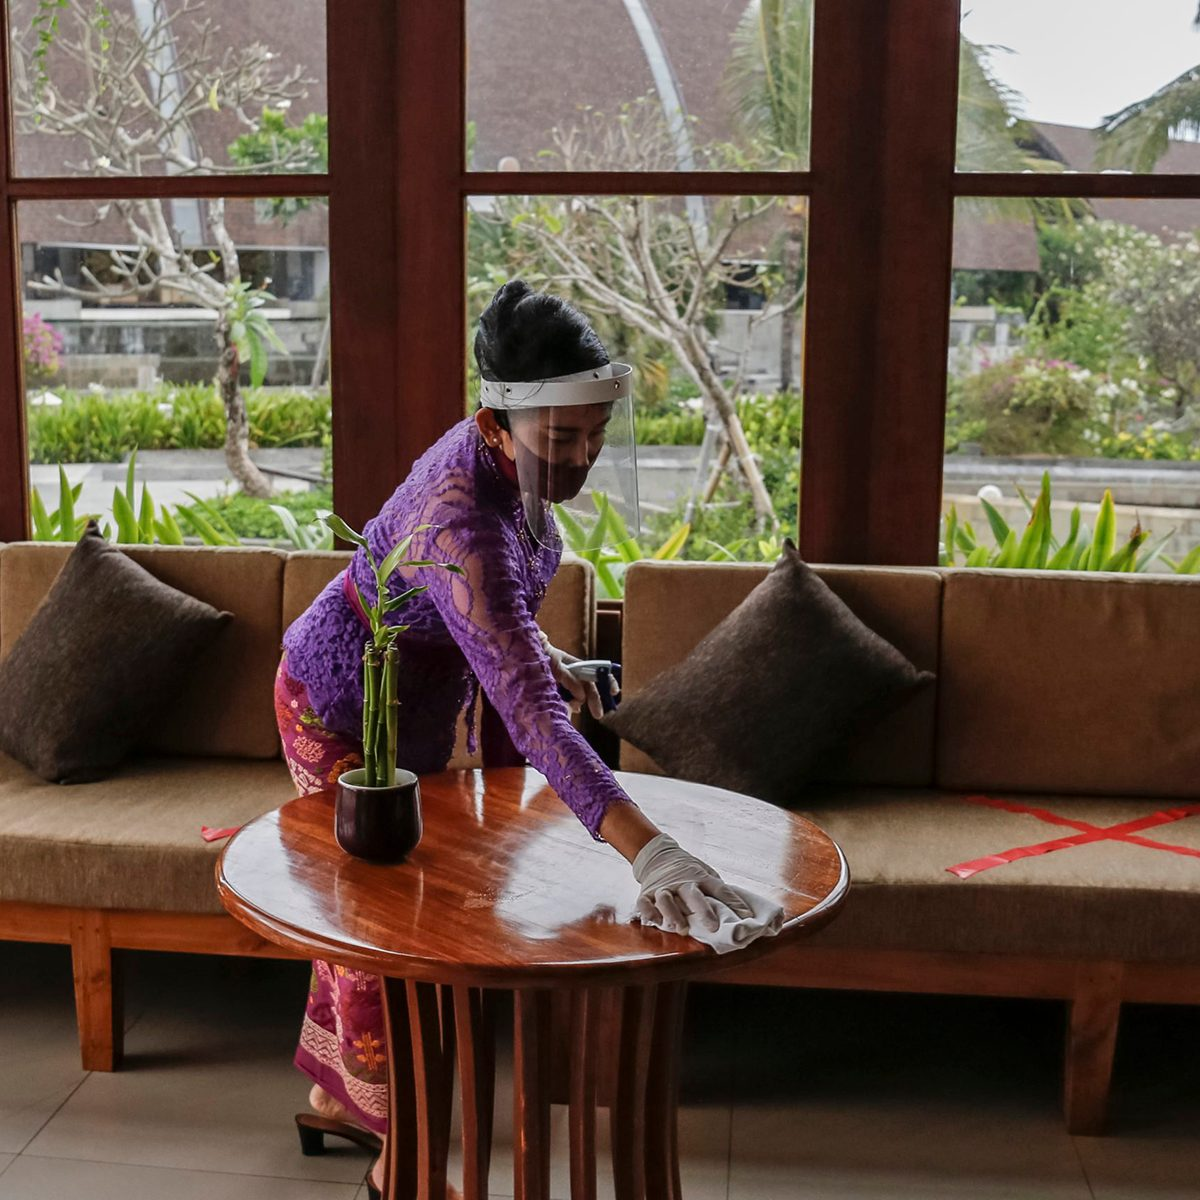 In a restaurant in Bali, an employee is disinfecting the tables